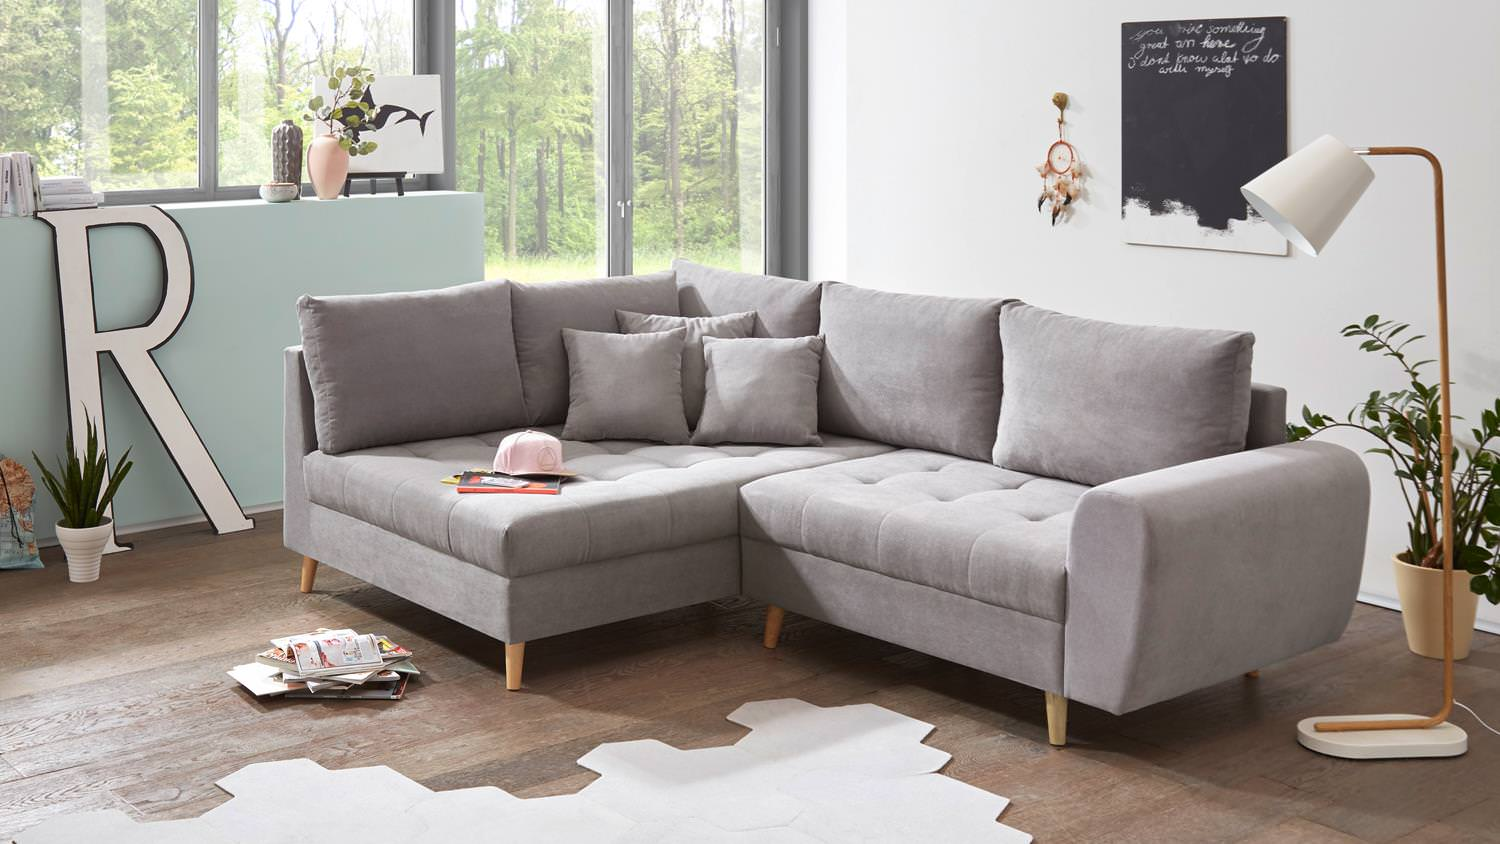 Ecksofa Links Black Red White Ecksofa Alice Links Grau